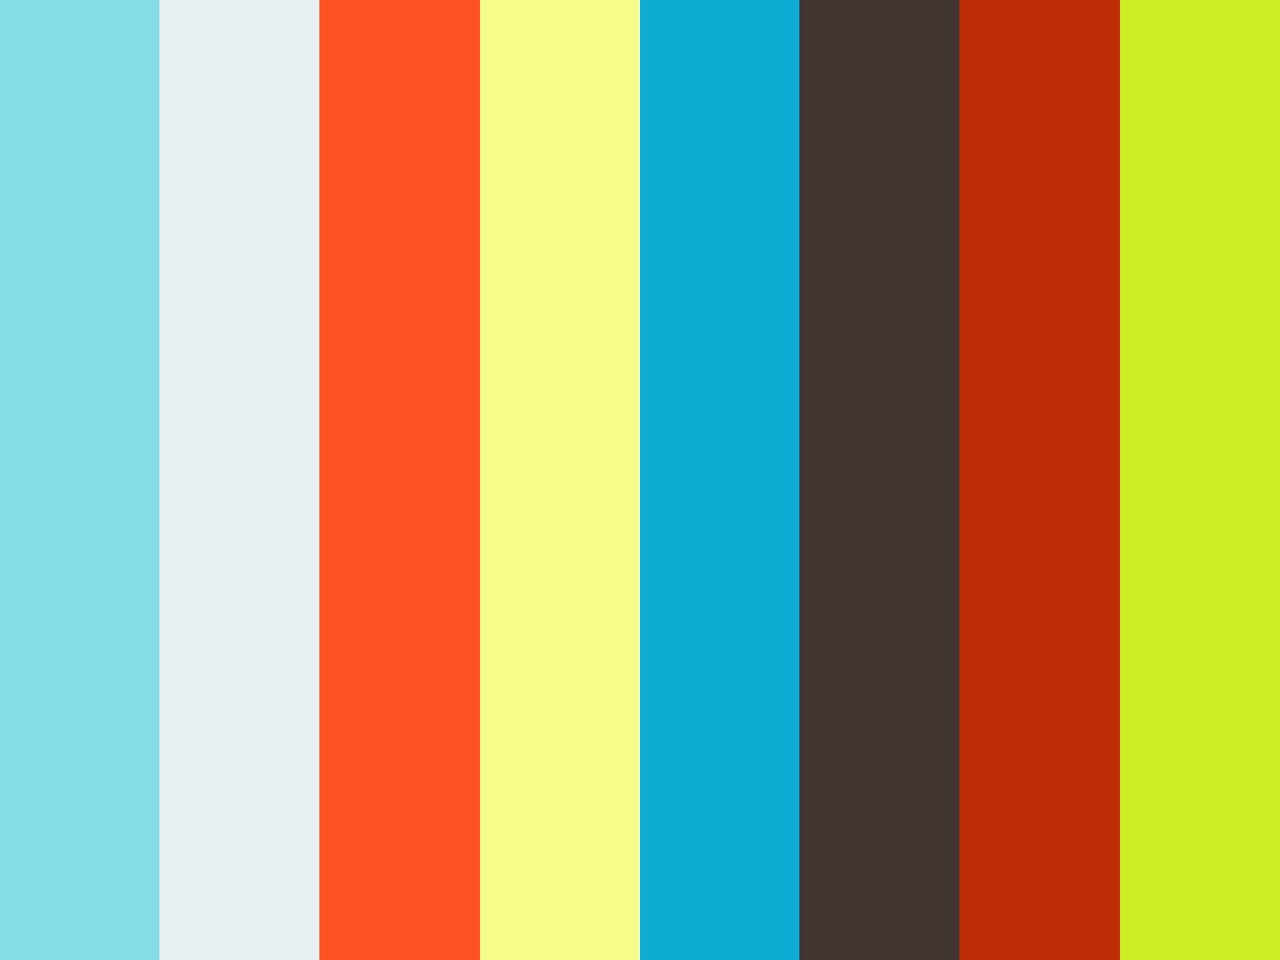 Expensive lightsabres!